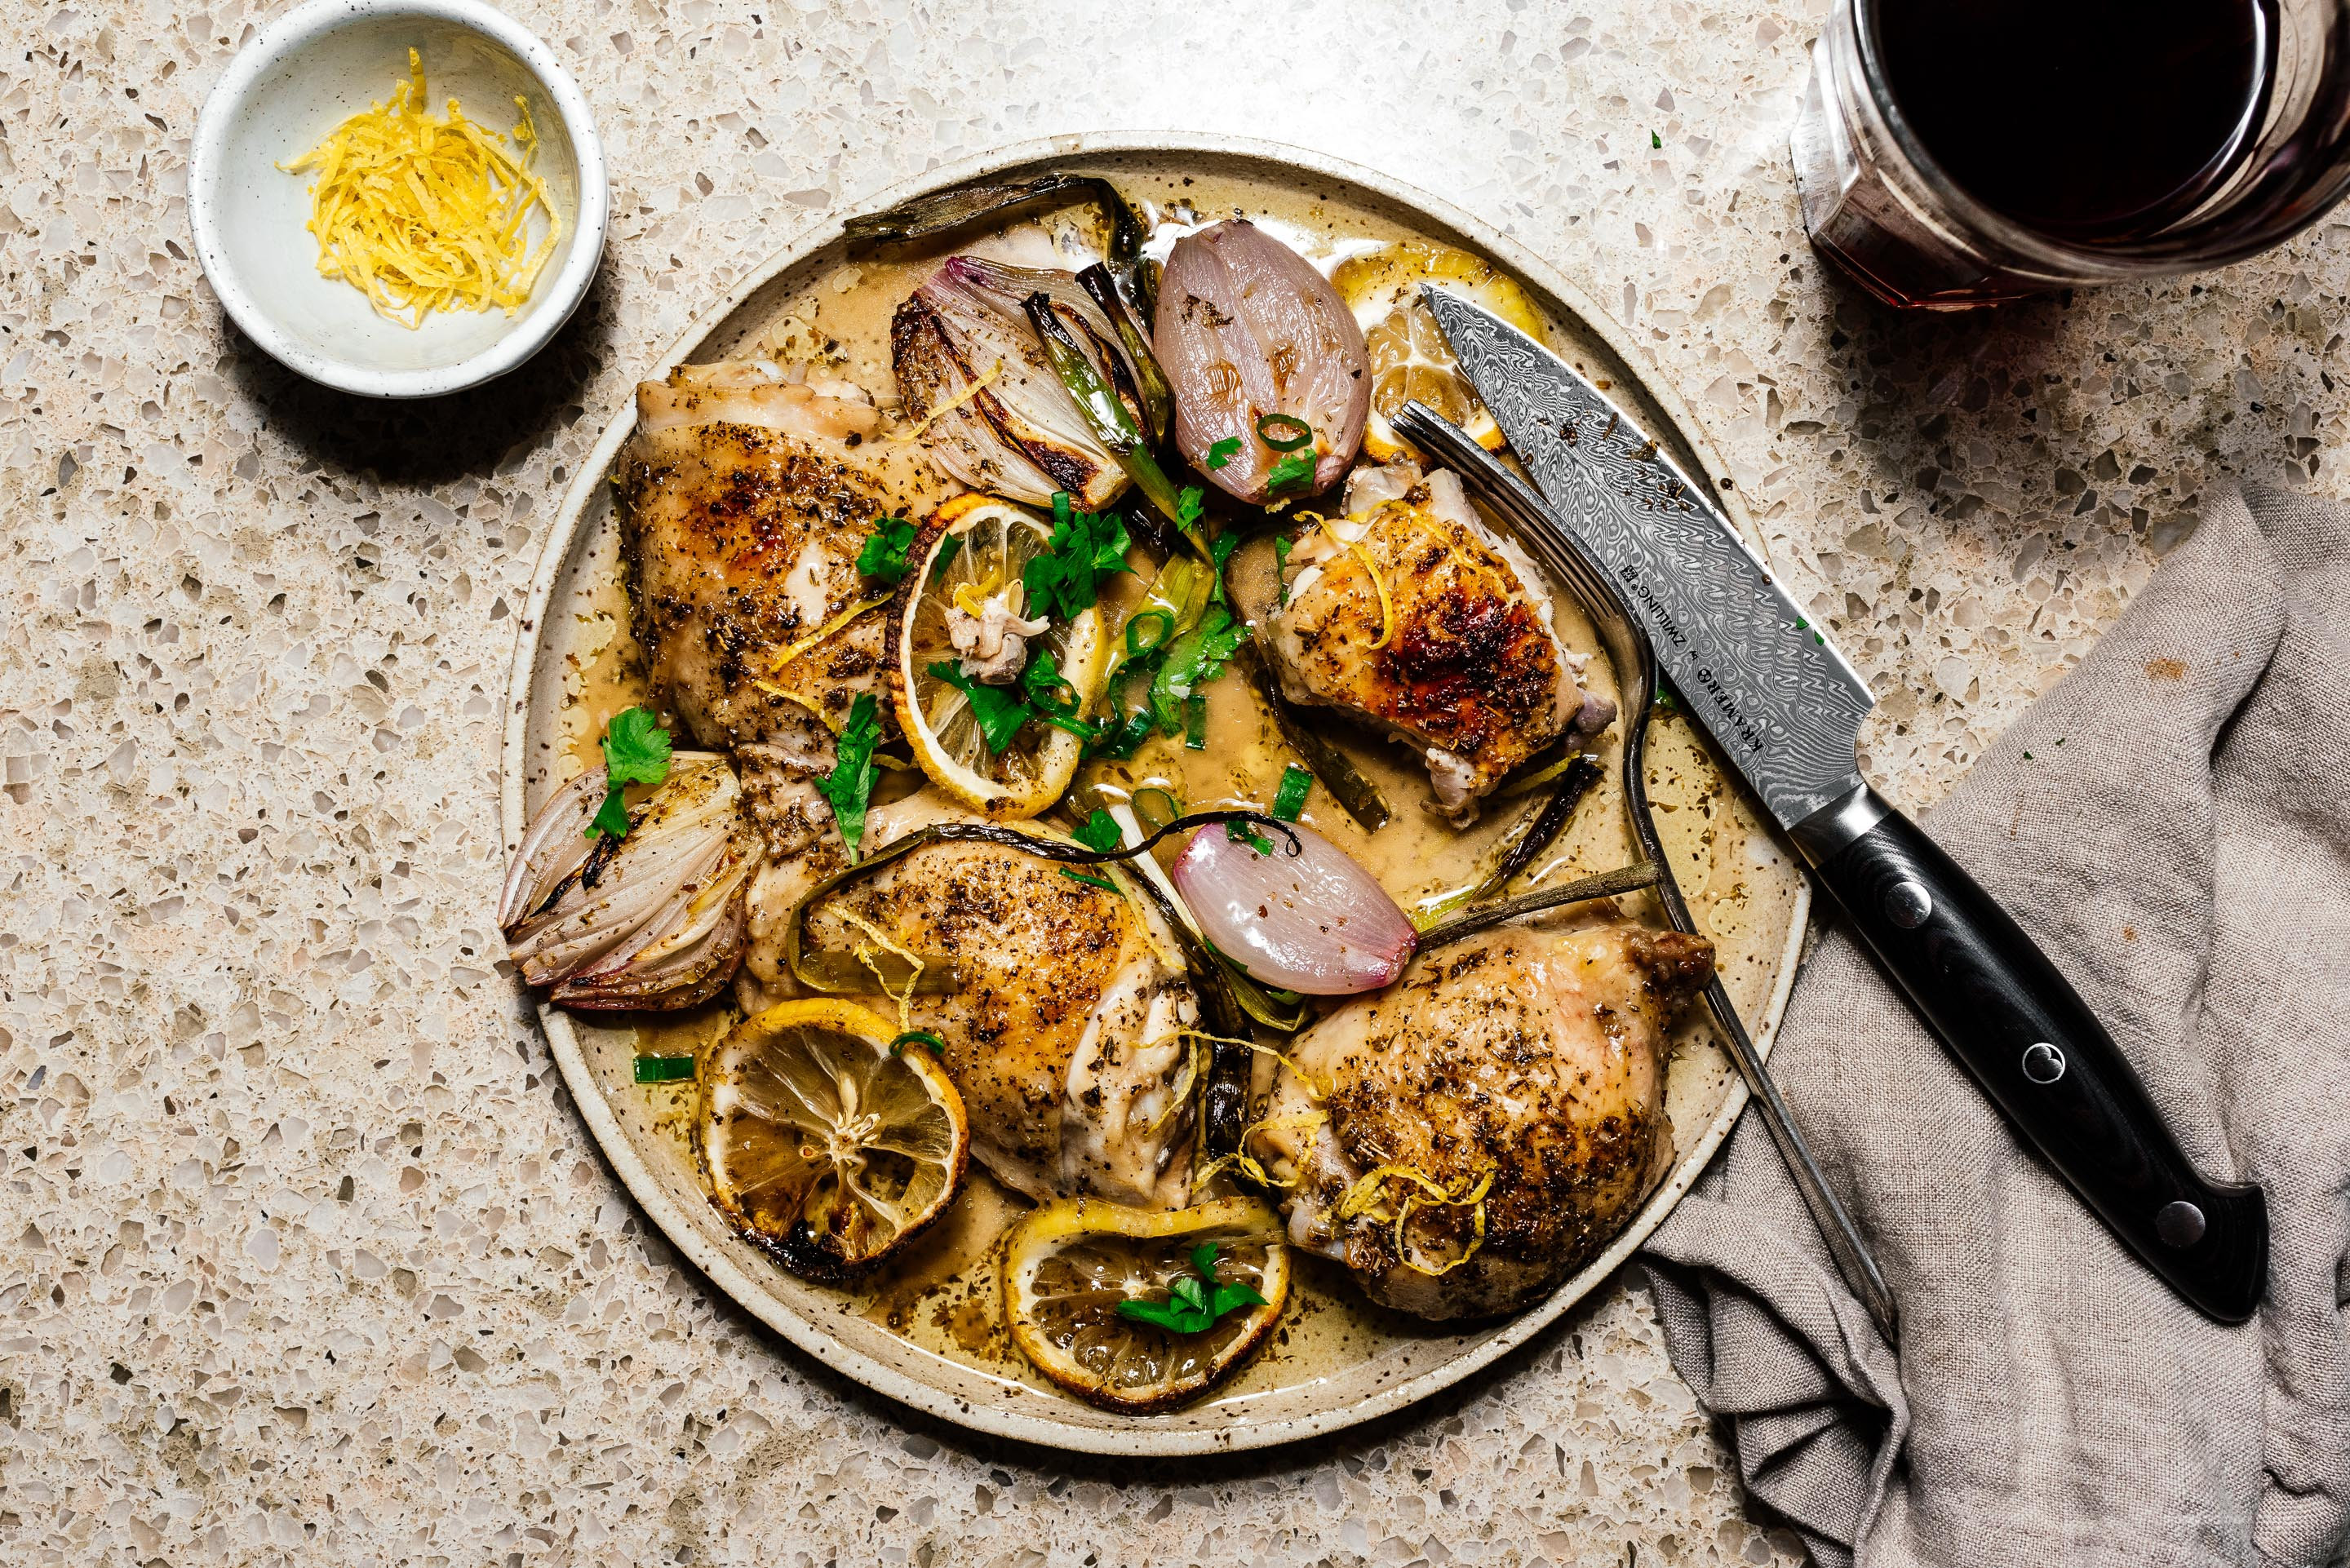 An easy weeknight oven roasted lemon pepper chicken recipe